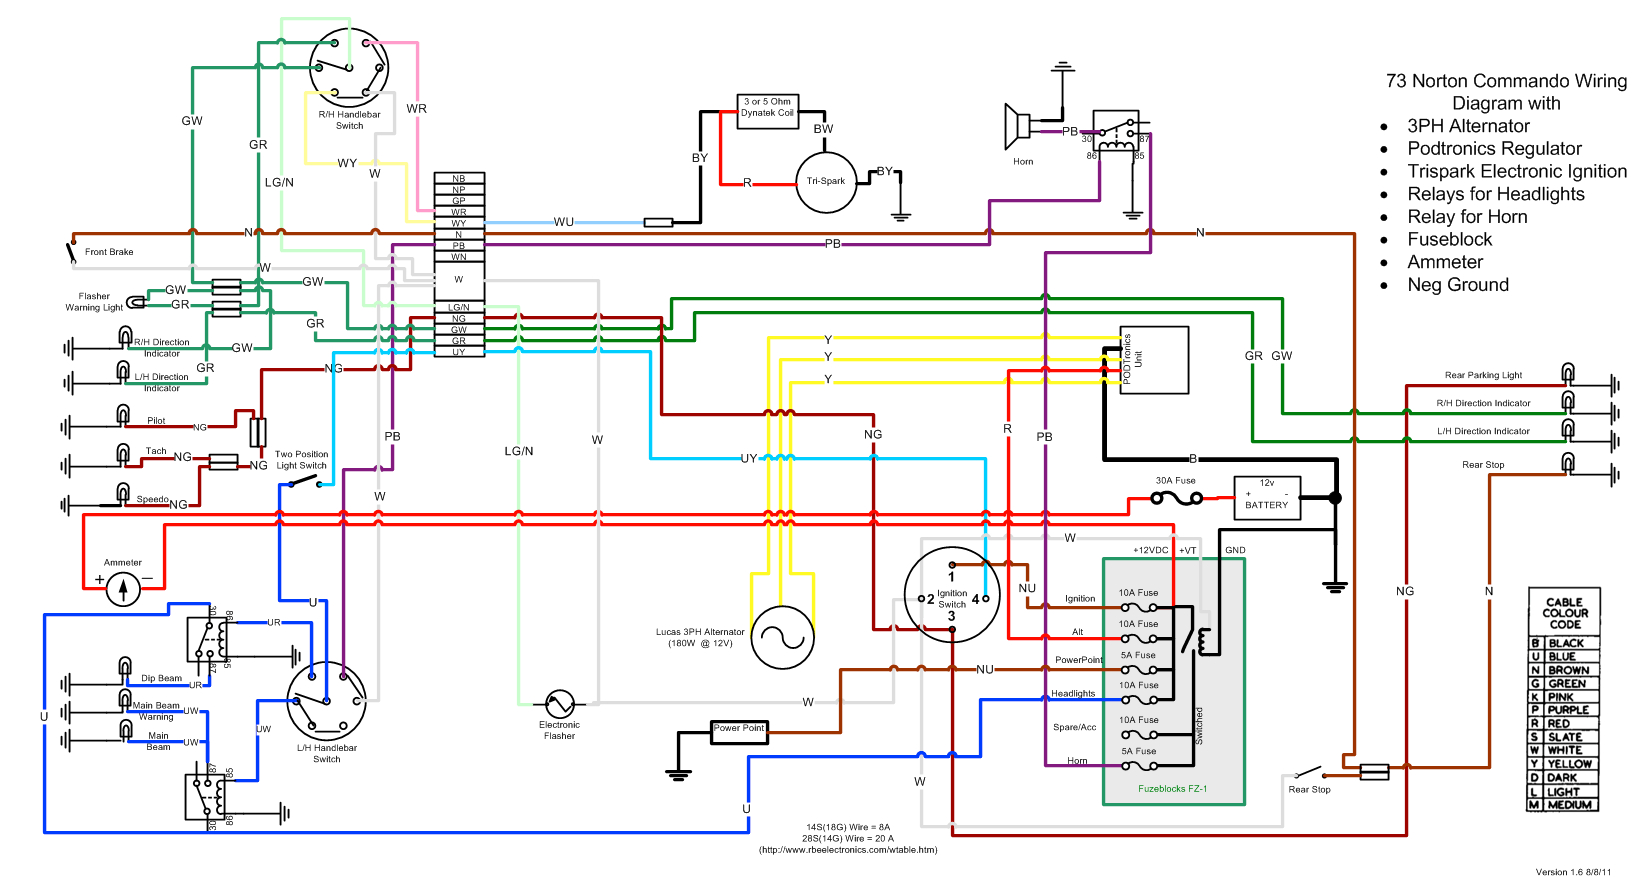 Diagram Dc Panel Wiring Diagram Full Version Hd Quality Wiring Diagram Diagrammycase Virtual Edge It